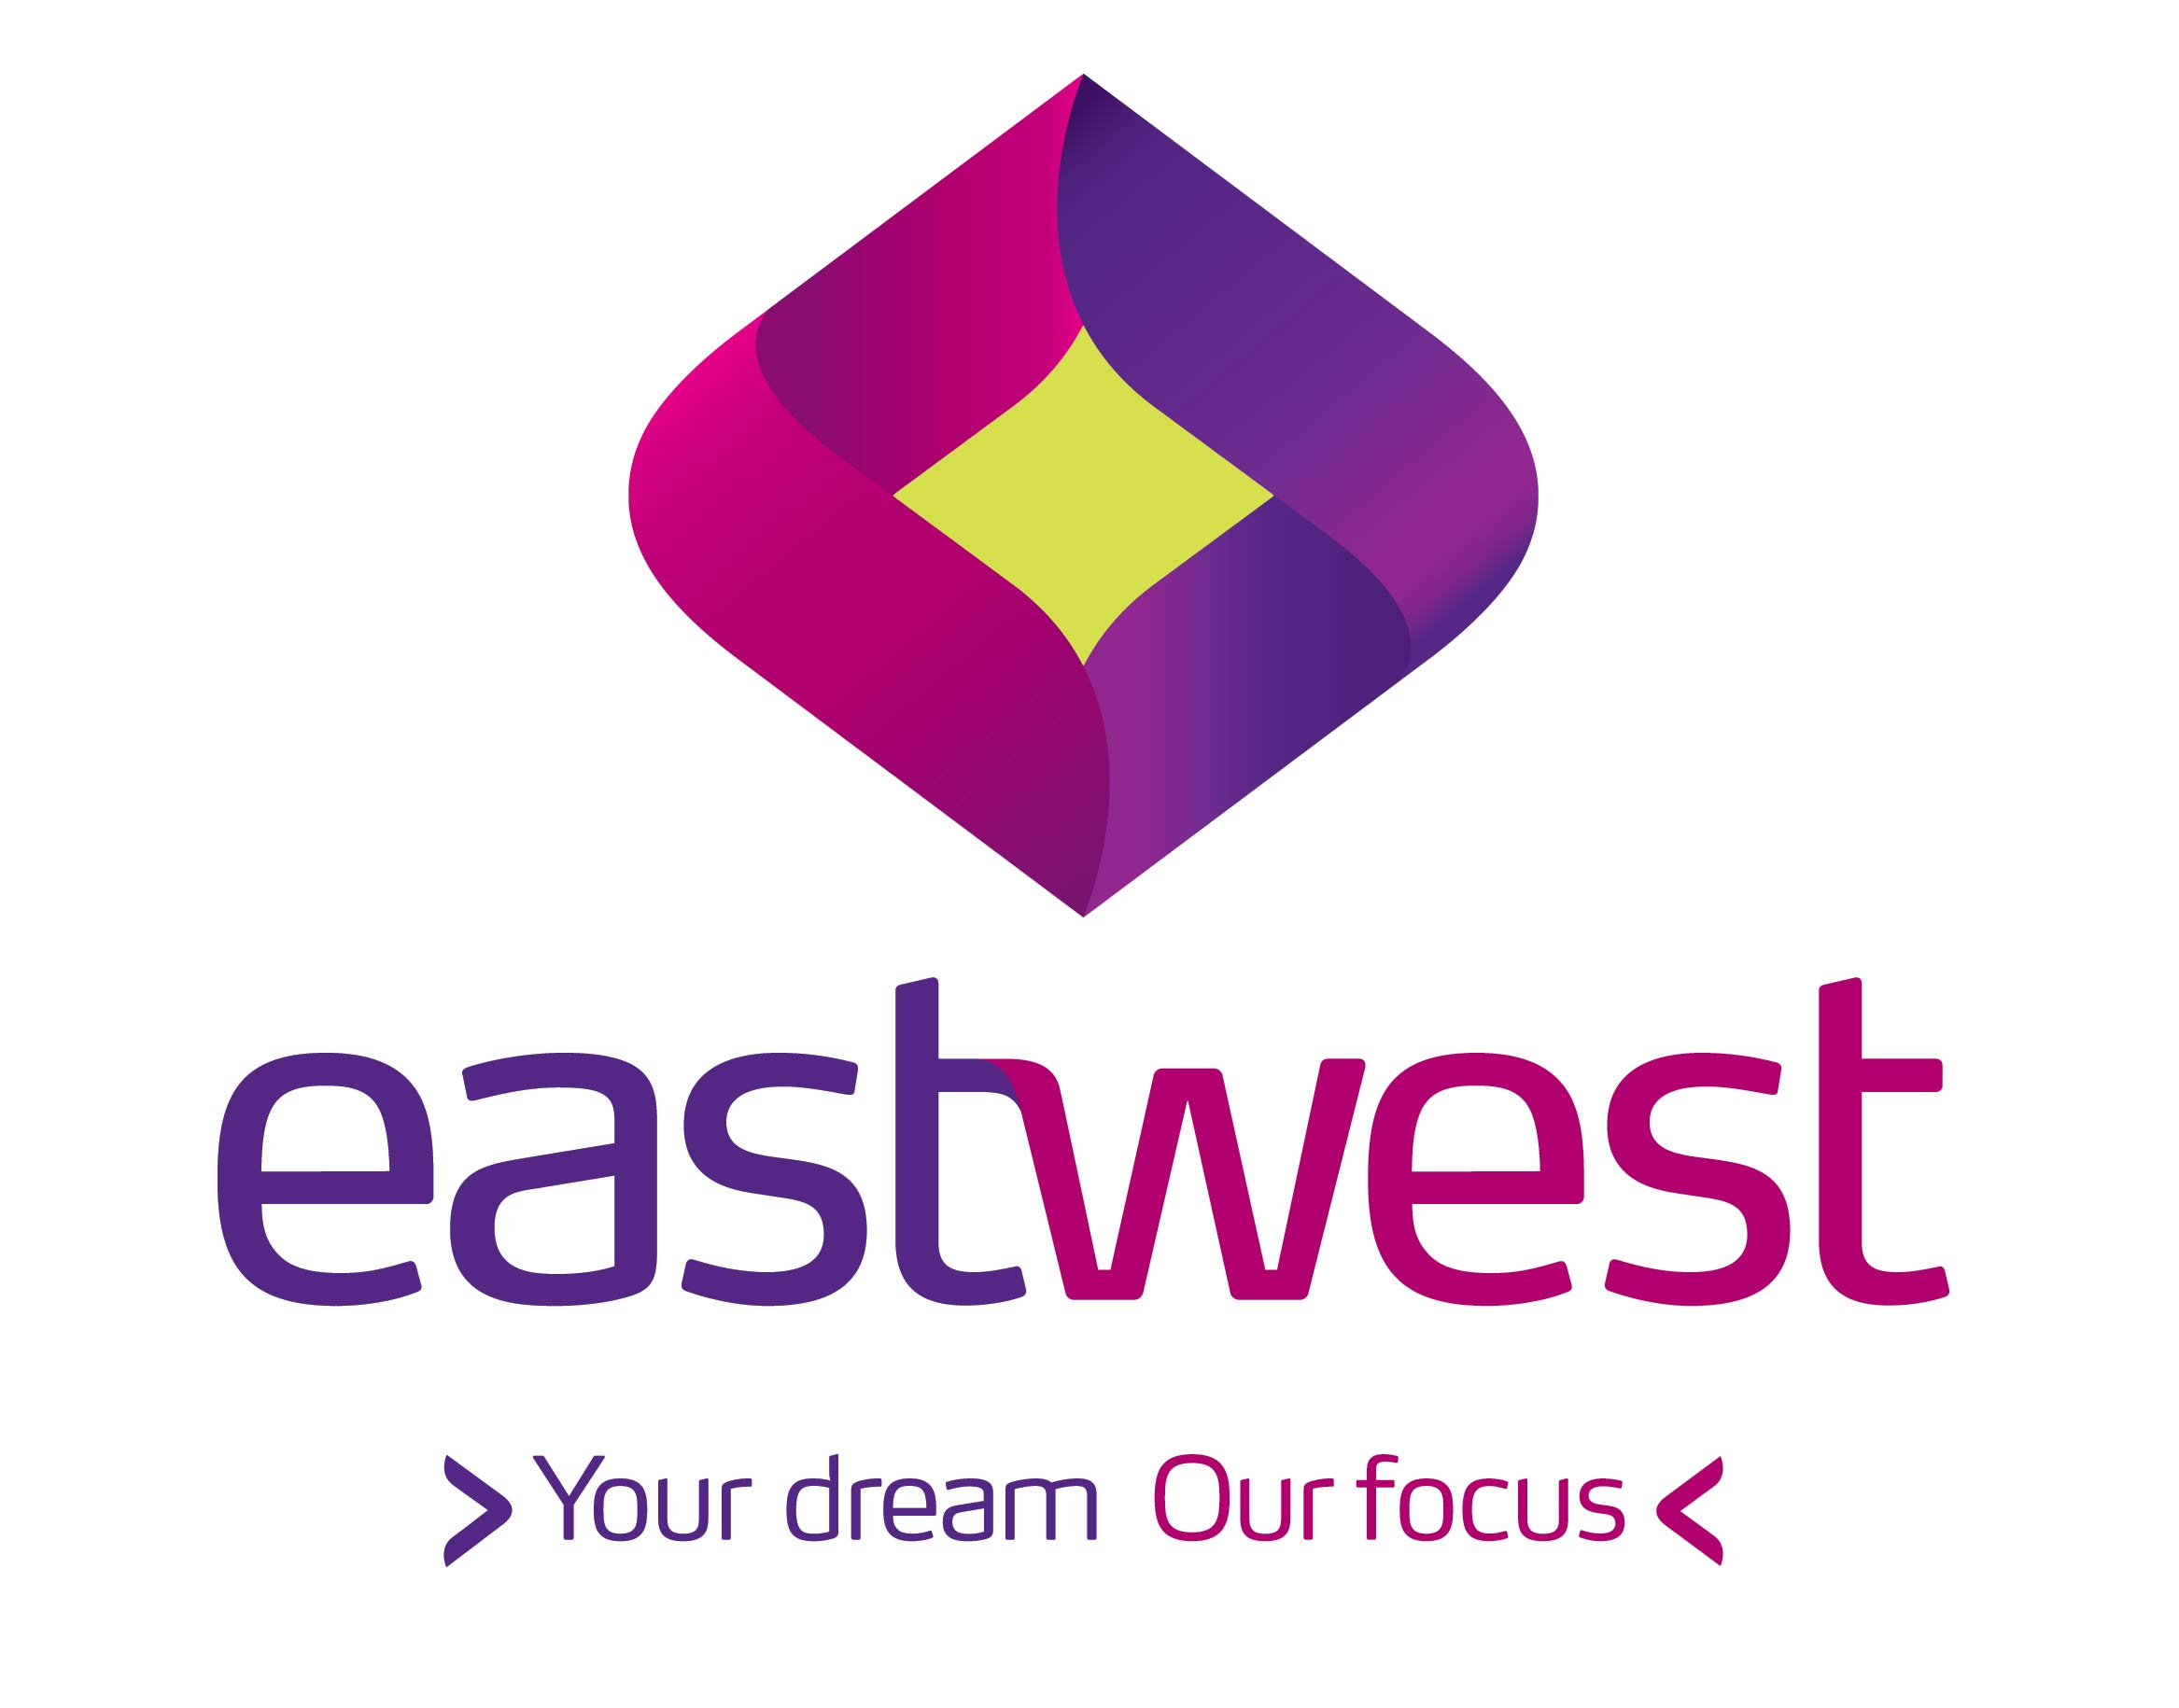 East West Bank - Logopedia, the logo and branding site